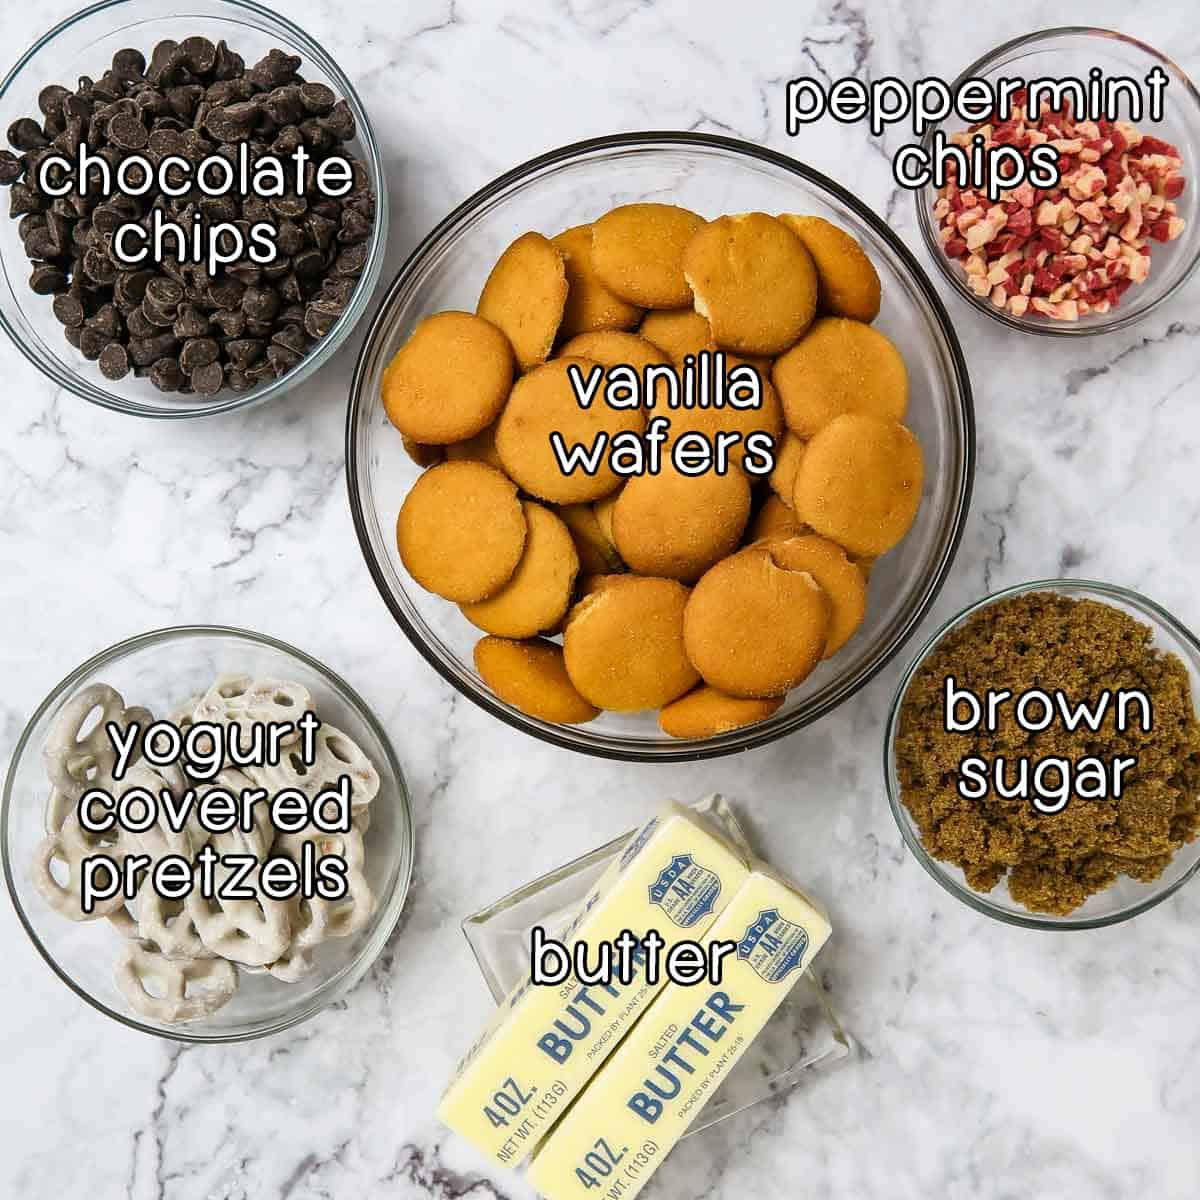 Overhead shot of ingredients- vanilla wafers, peppermint chips, brown sugar, butter, yogurt covered pretzels, and chocolate chips.